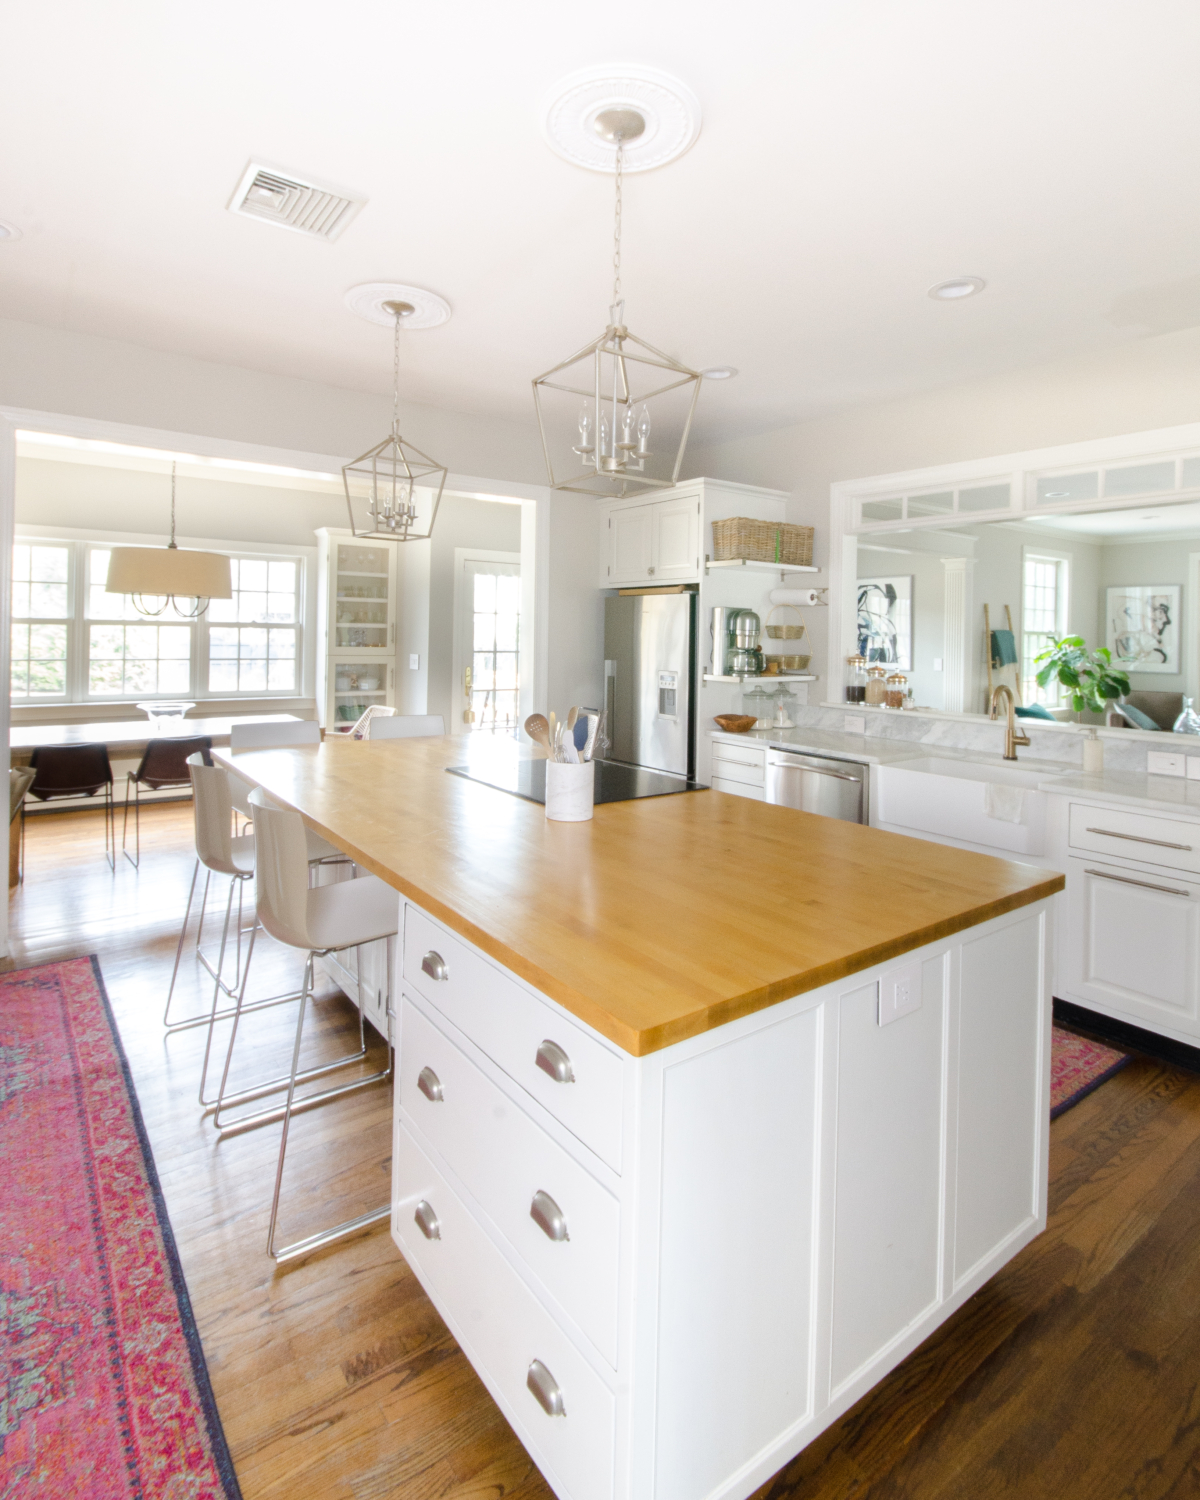 A classic white kitchen with lantern kitchen pendants and warm wood accents. Beautiful mix of traditional and modern in this family-friendly kitchen.